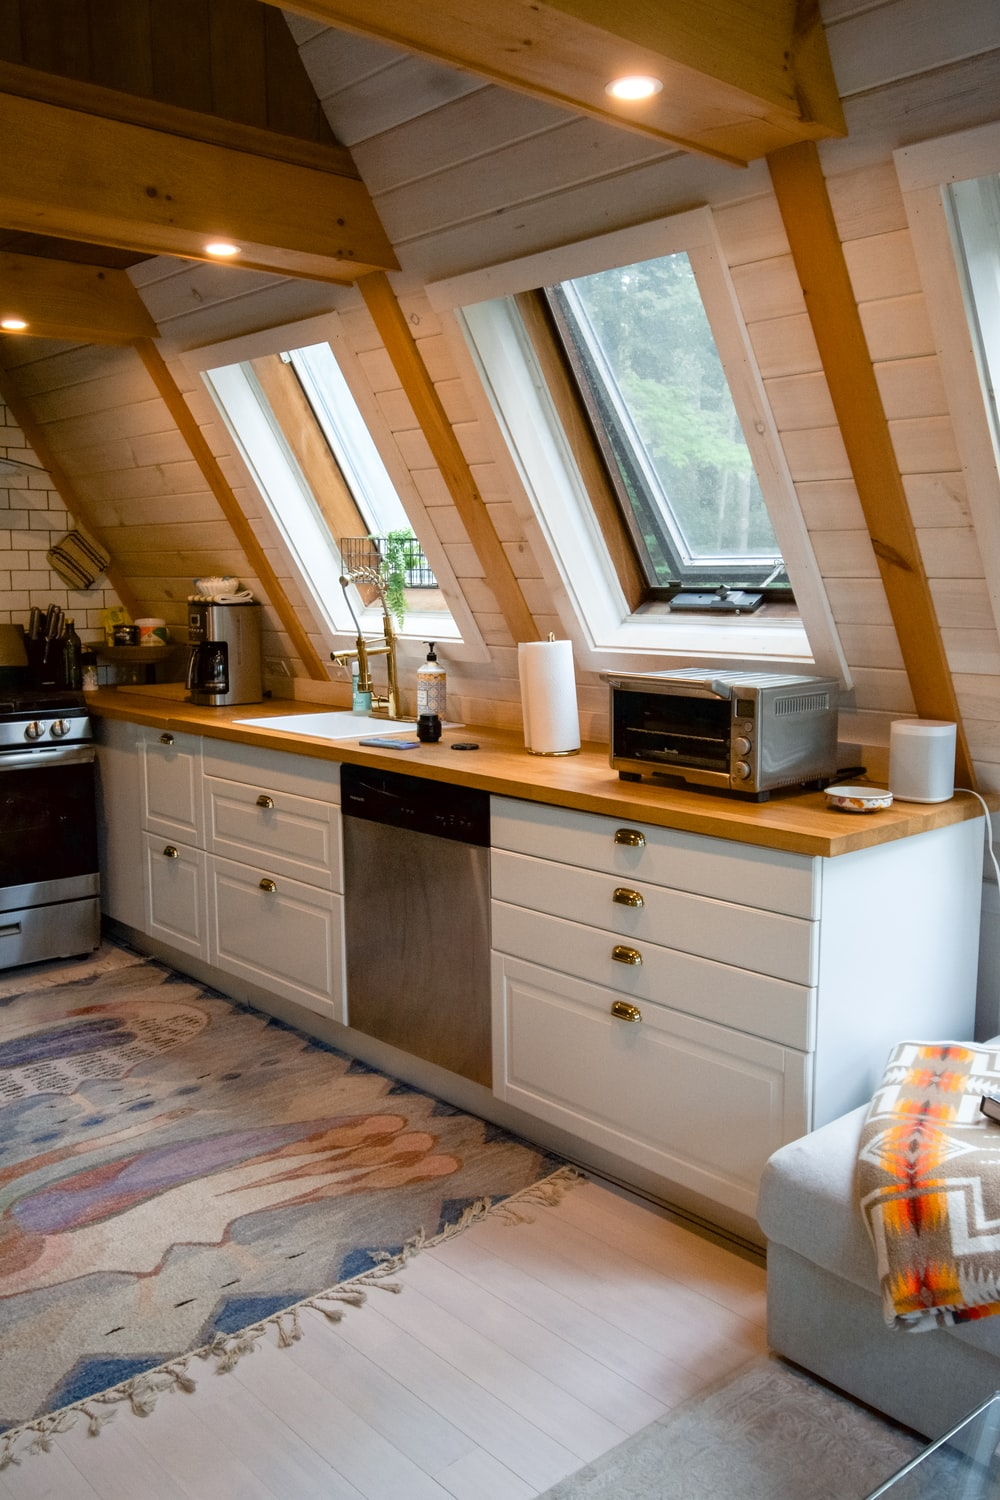 white microwave oven on white wooden cabinet